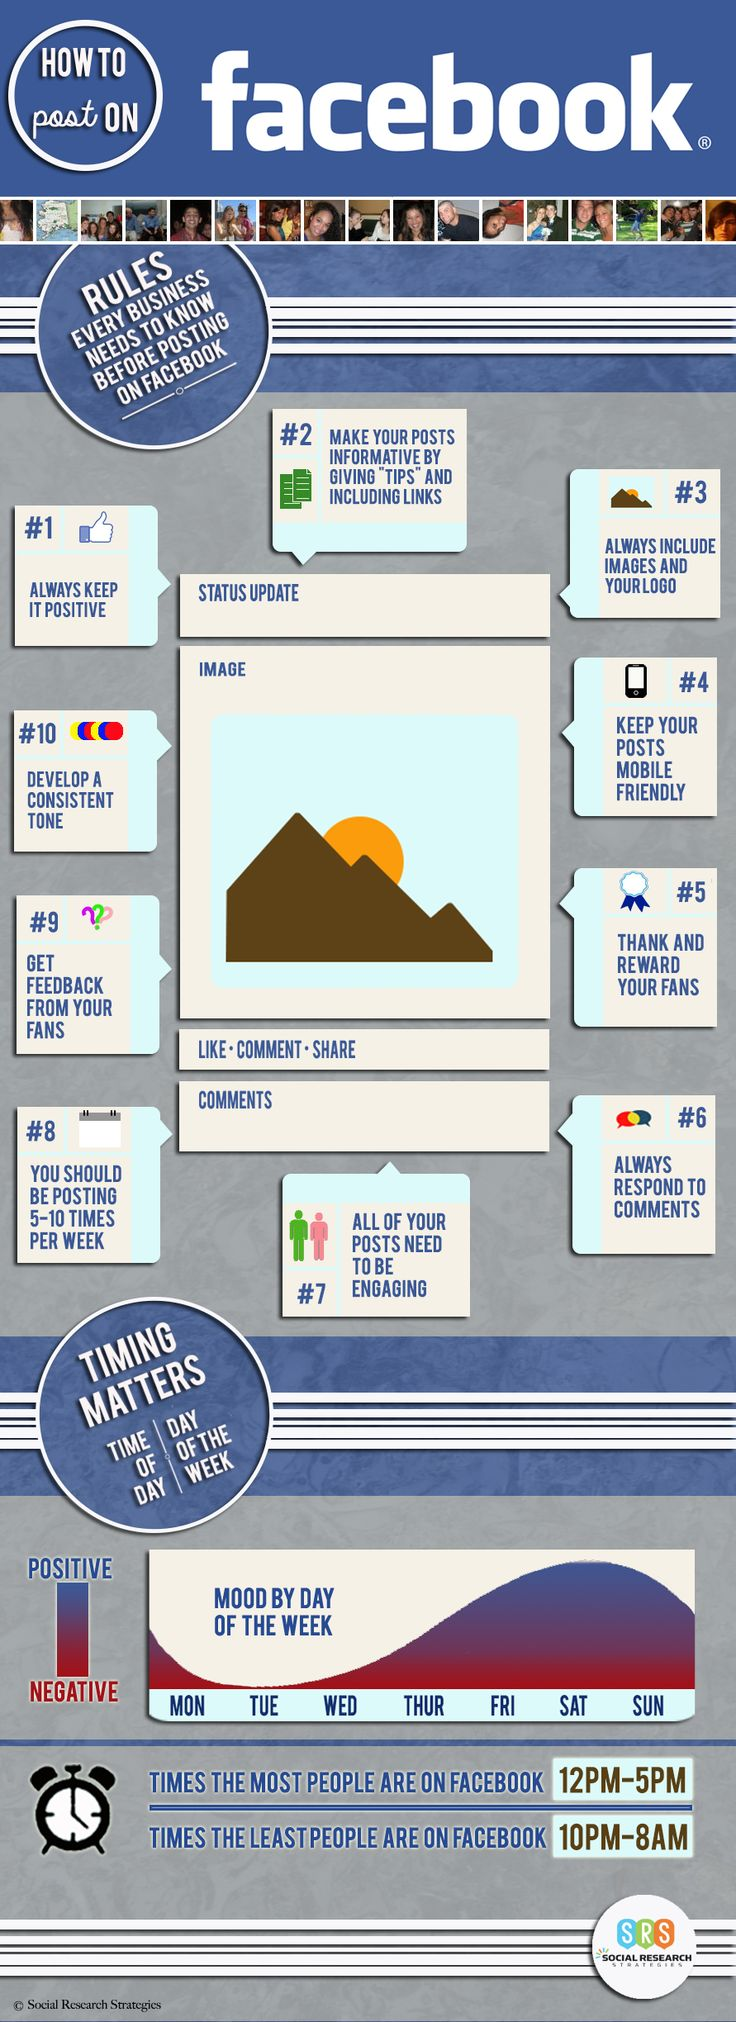 The+10+Rules+That+Every+Business+Needs+To+Know+Before+Posting+Content+On+Facebook+-+infographic